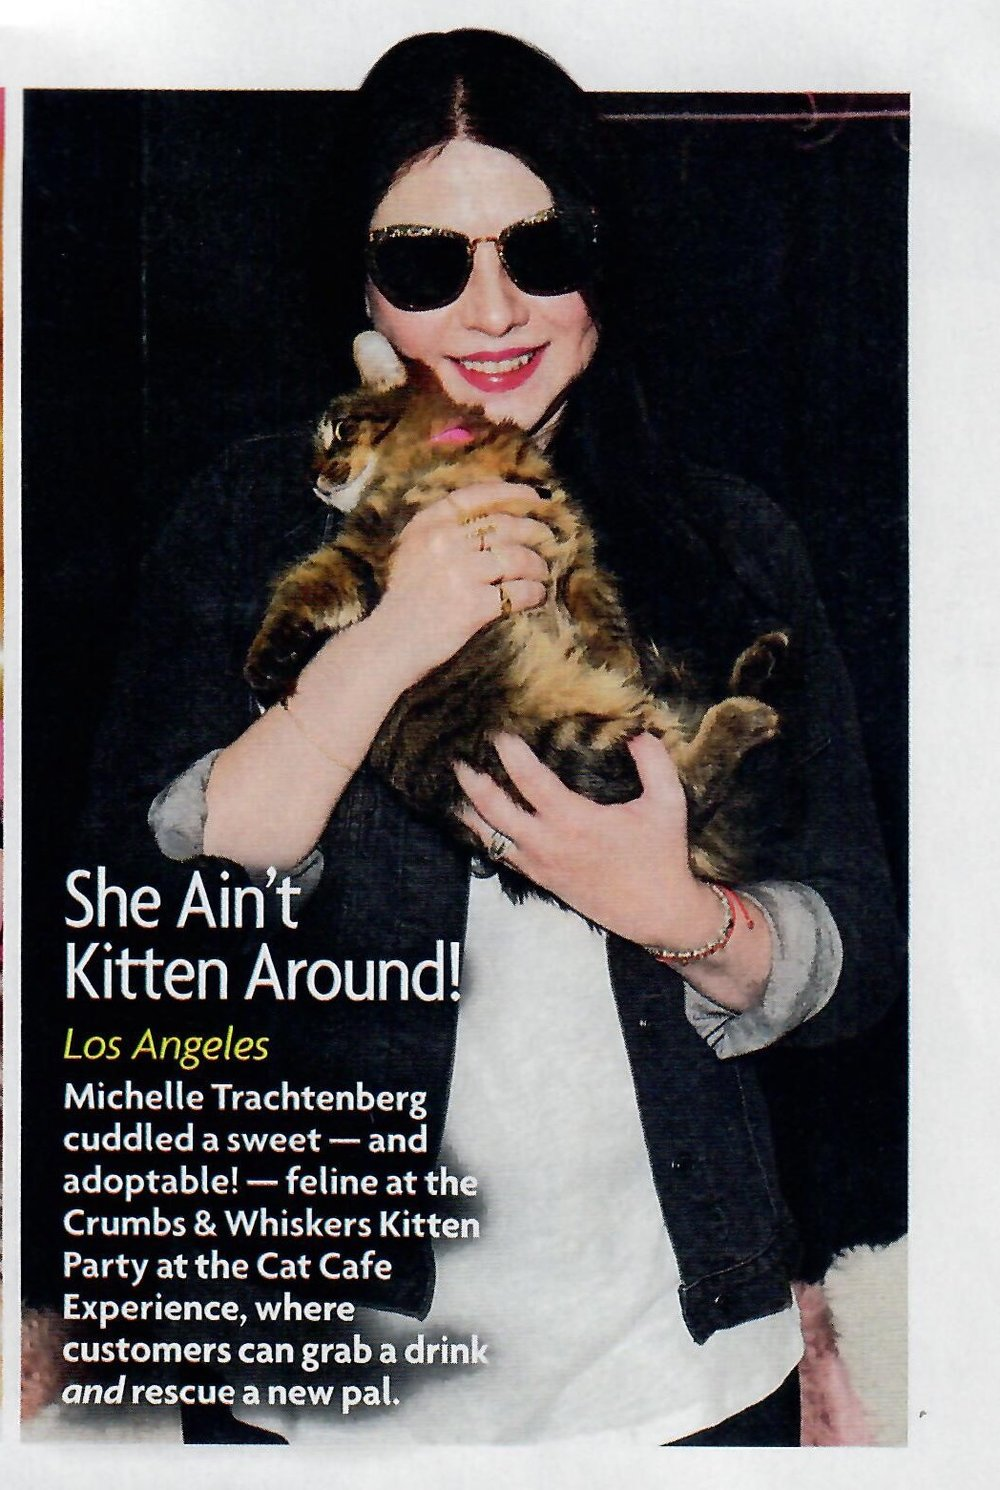 Star Magazine_Crumbs and Whiskers_9.17.18.jpg